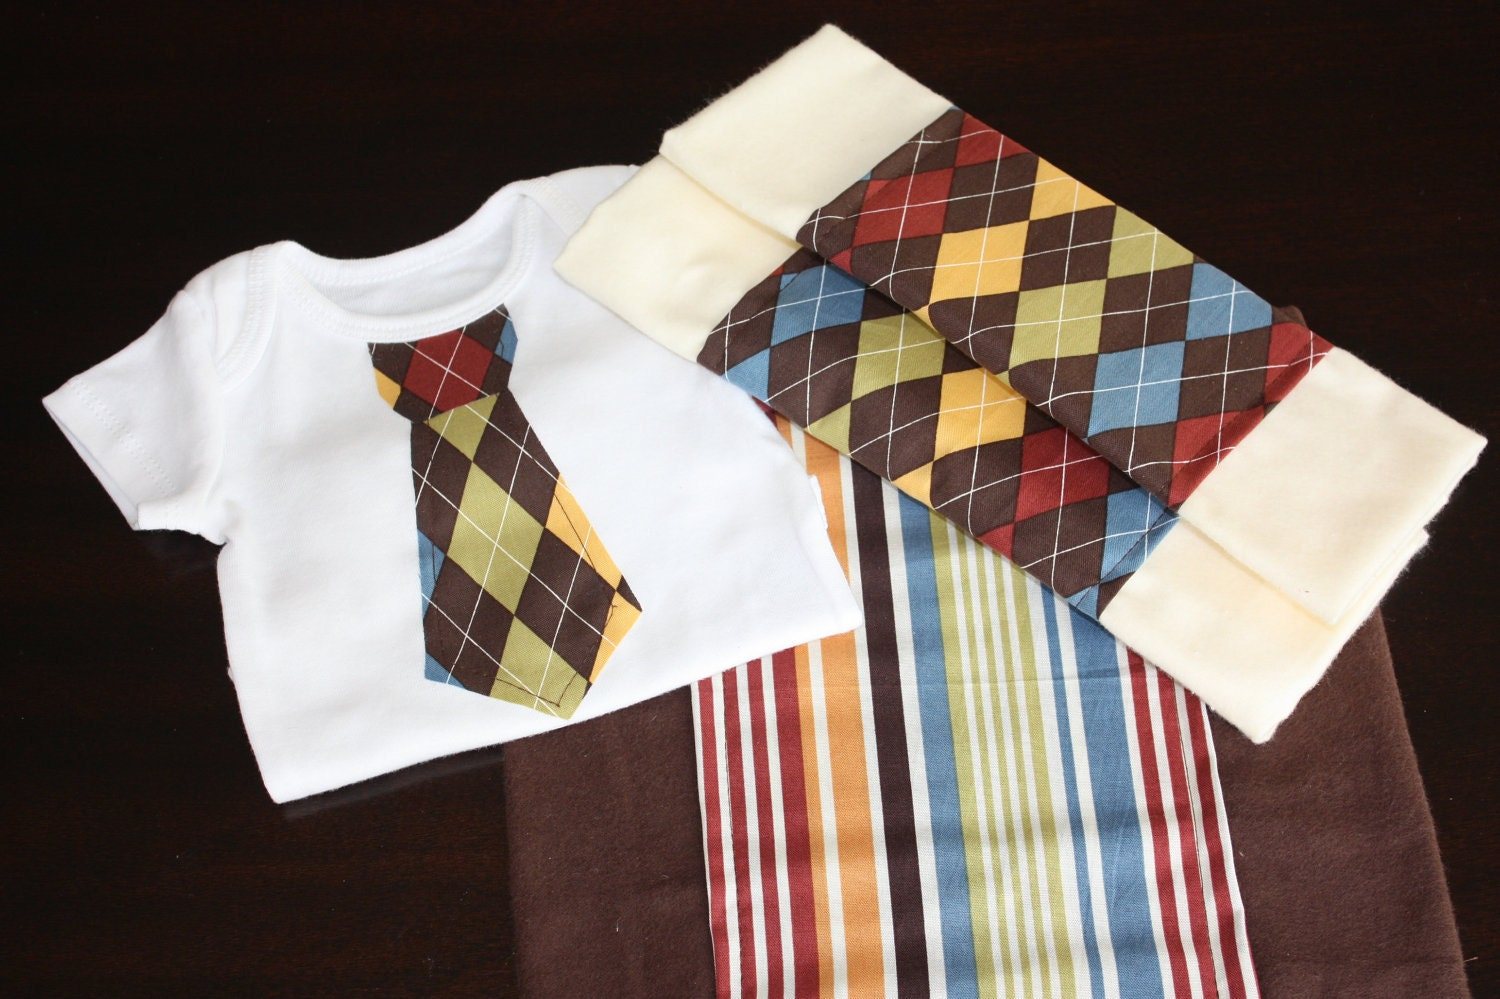 25% OFF SALE - Boutique Style Argyle Tie Appliqued Onesie with Matching Argyle & Guava Stripes Burp Cloth Set